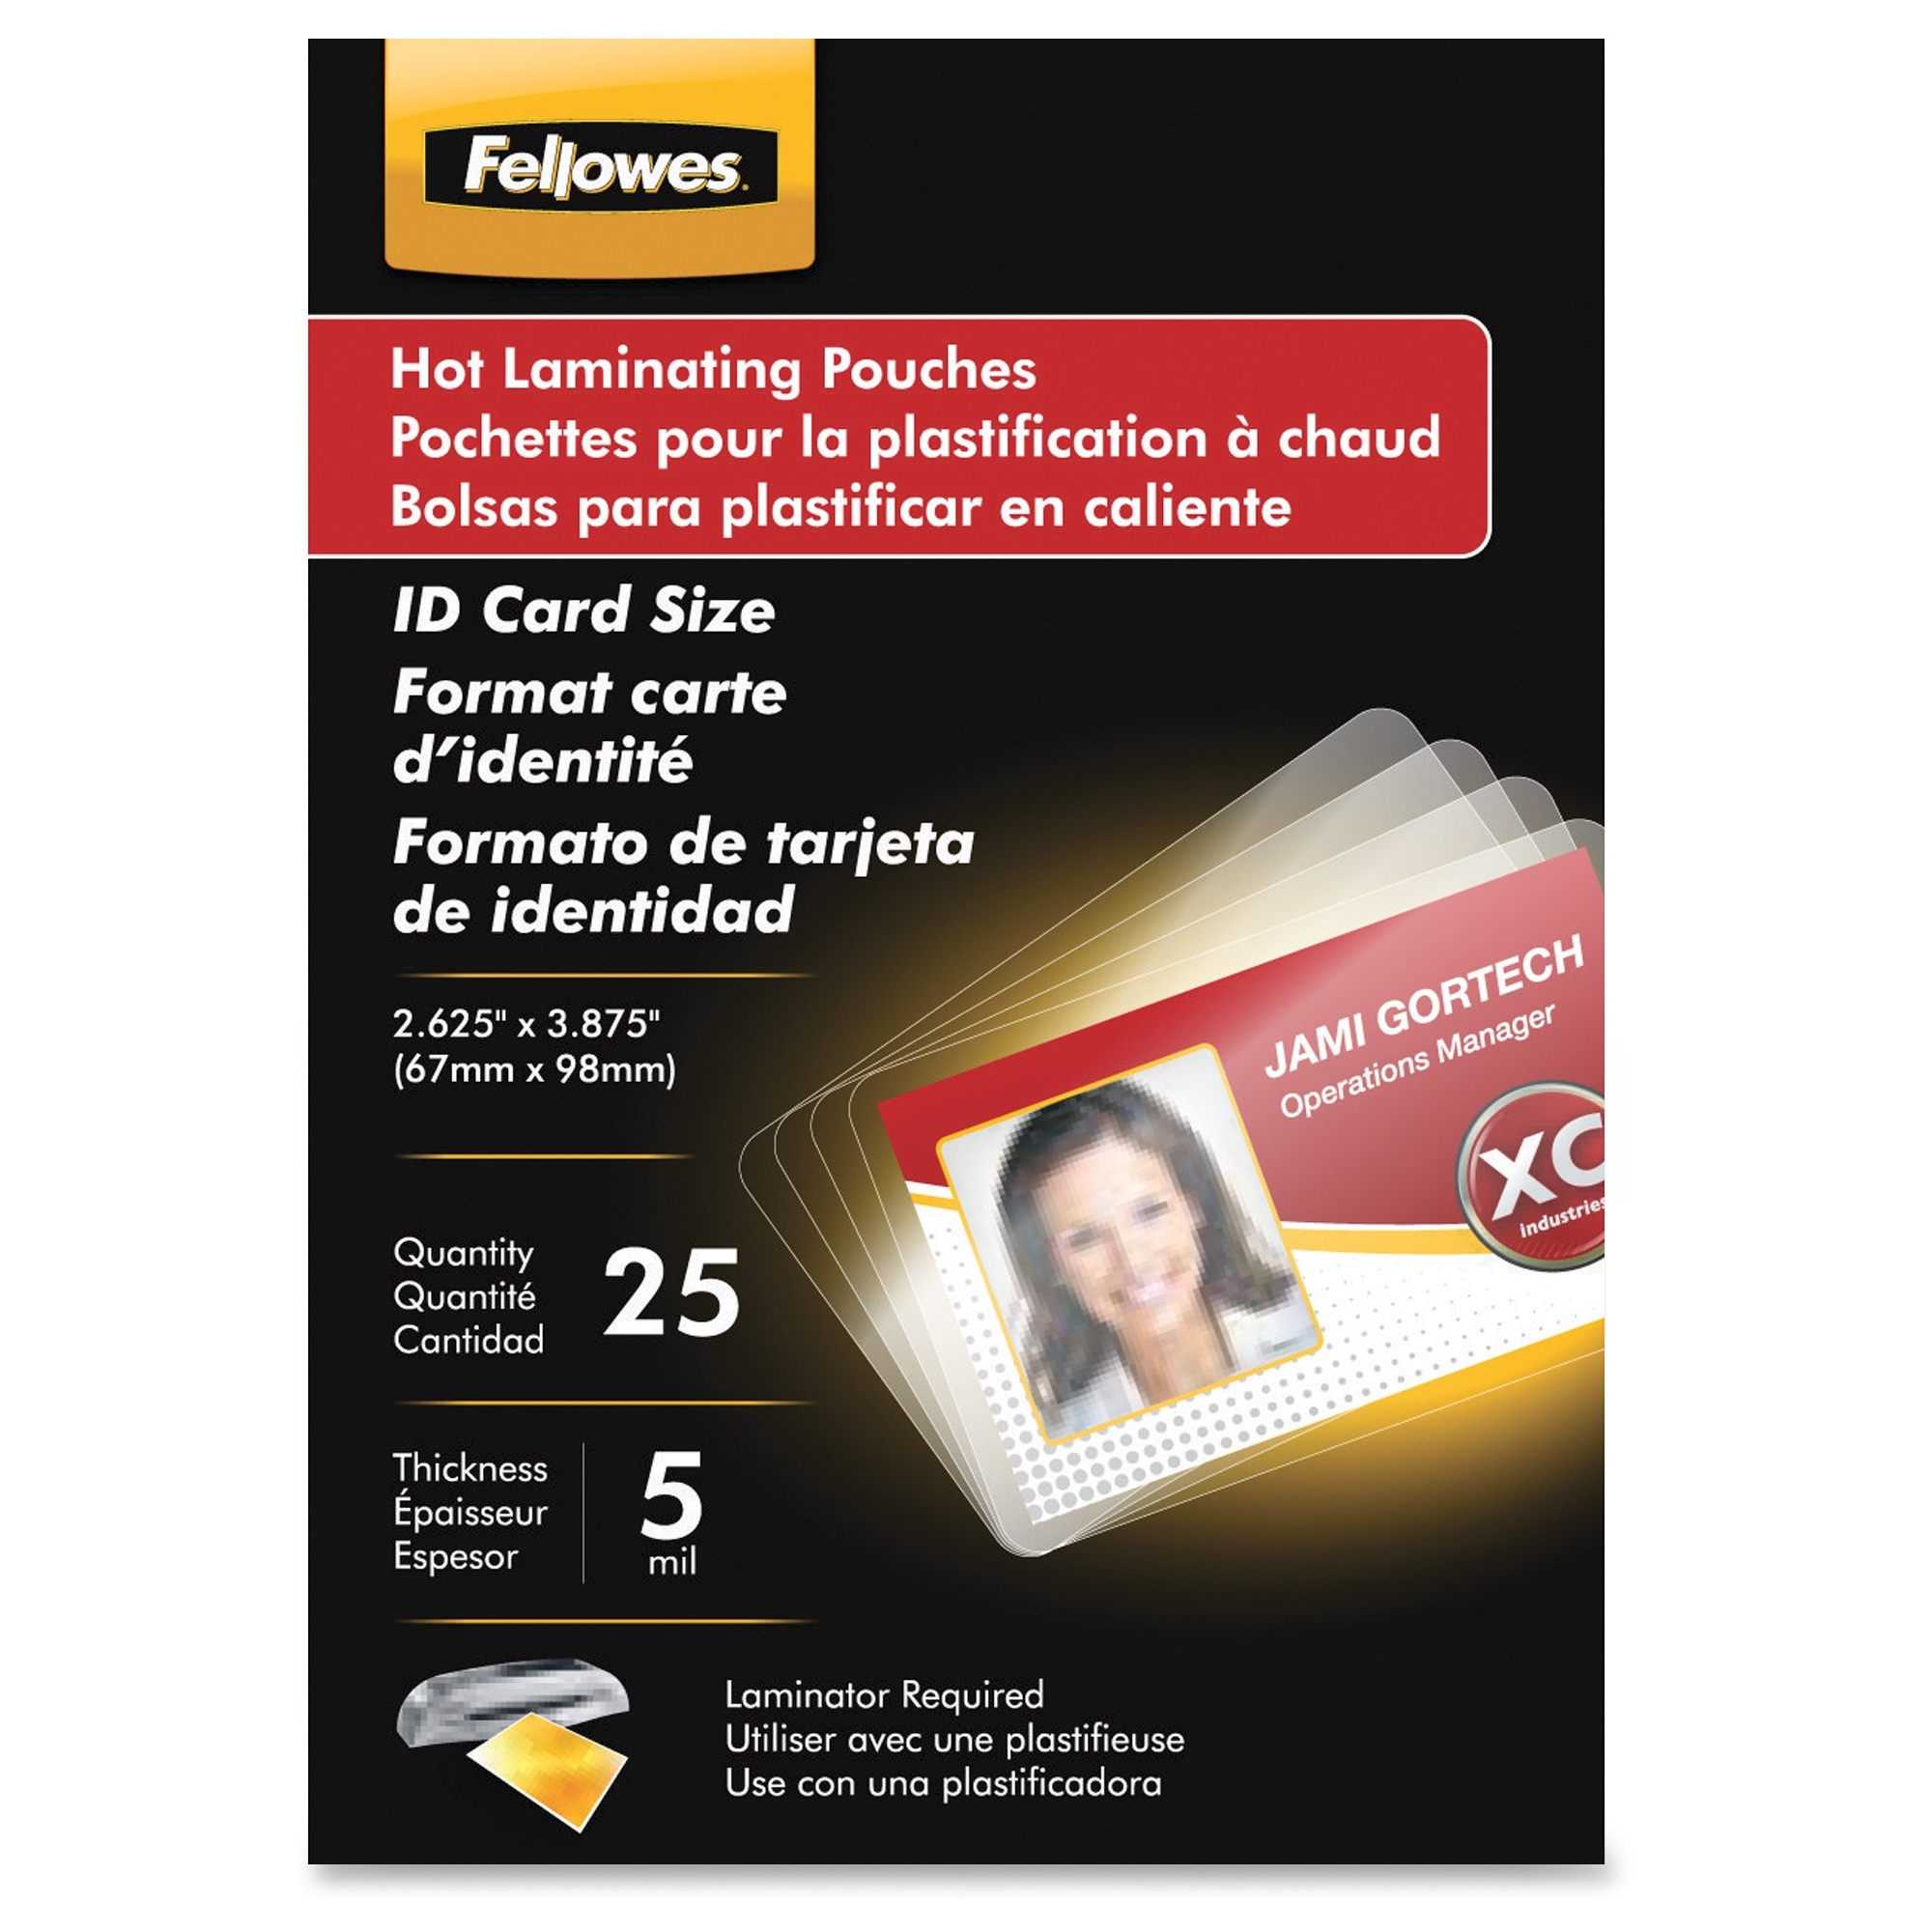 Glossy Pouches - ID Tag not punched 5 mil 100 pack - 2.63 inch Width x 3.88 inch Length x 5 mil Thickness - Type G - Glossy - Pre-trimmed Durable Unpunched - 100 / Pack - Clear